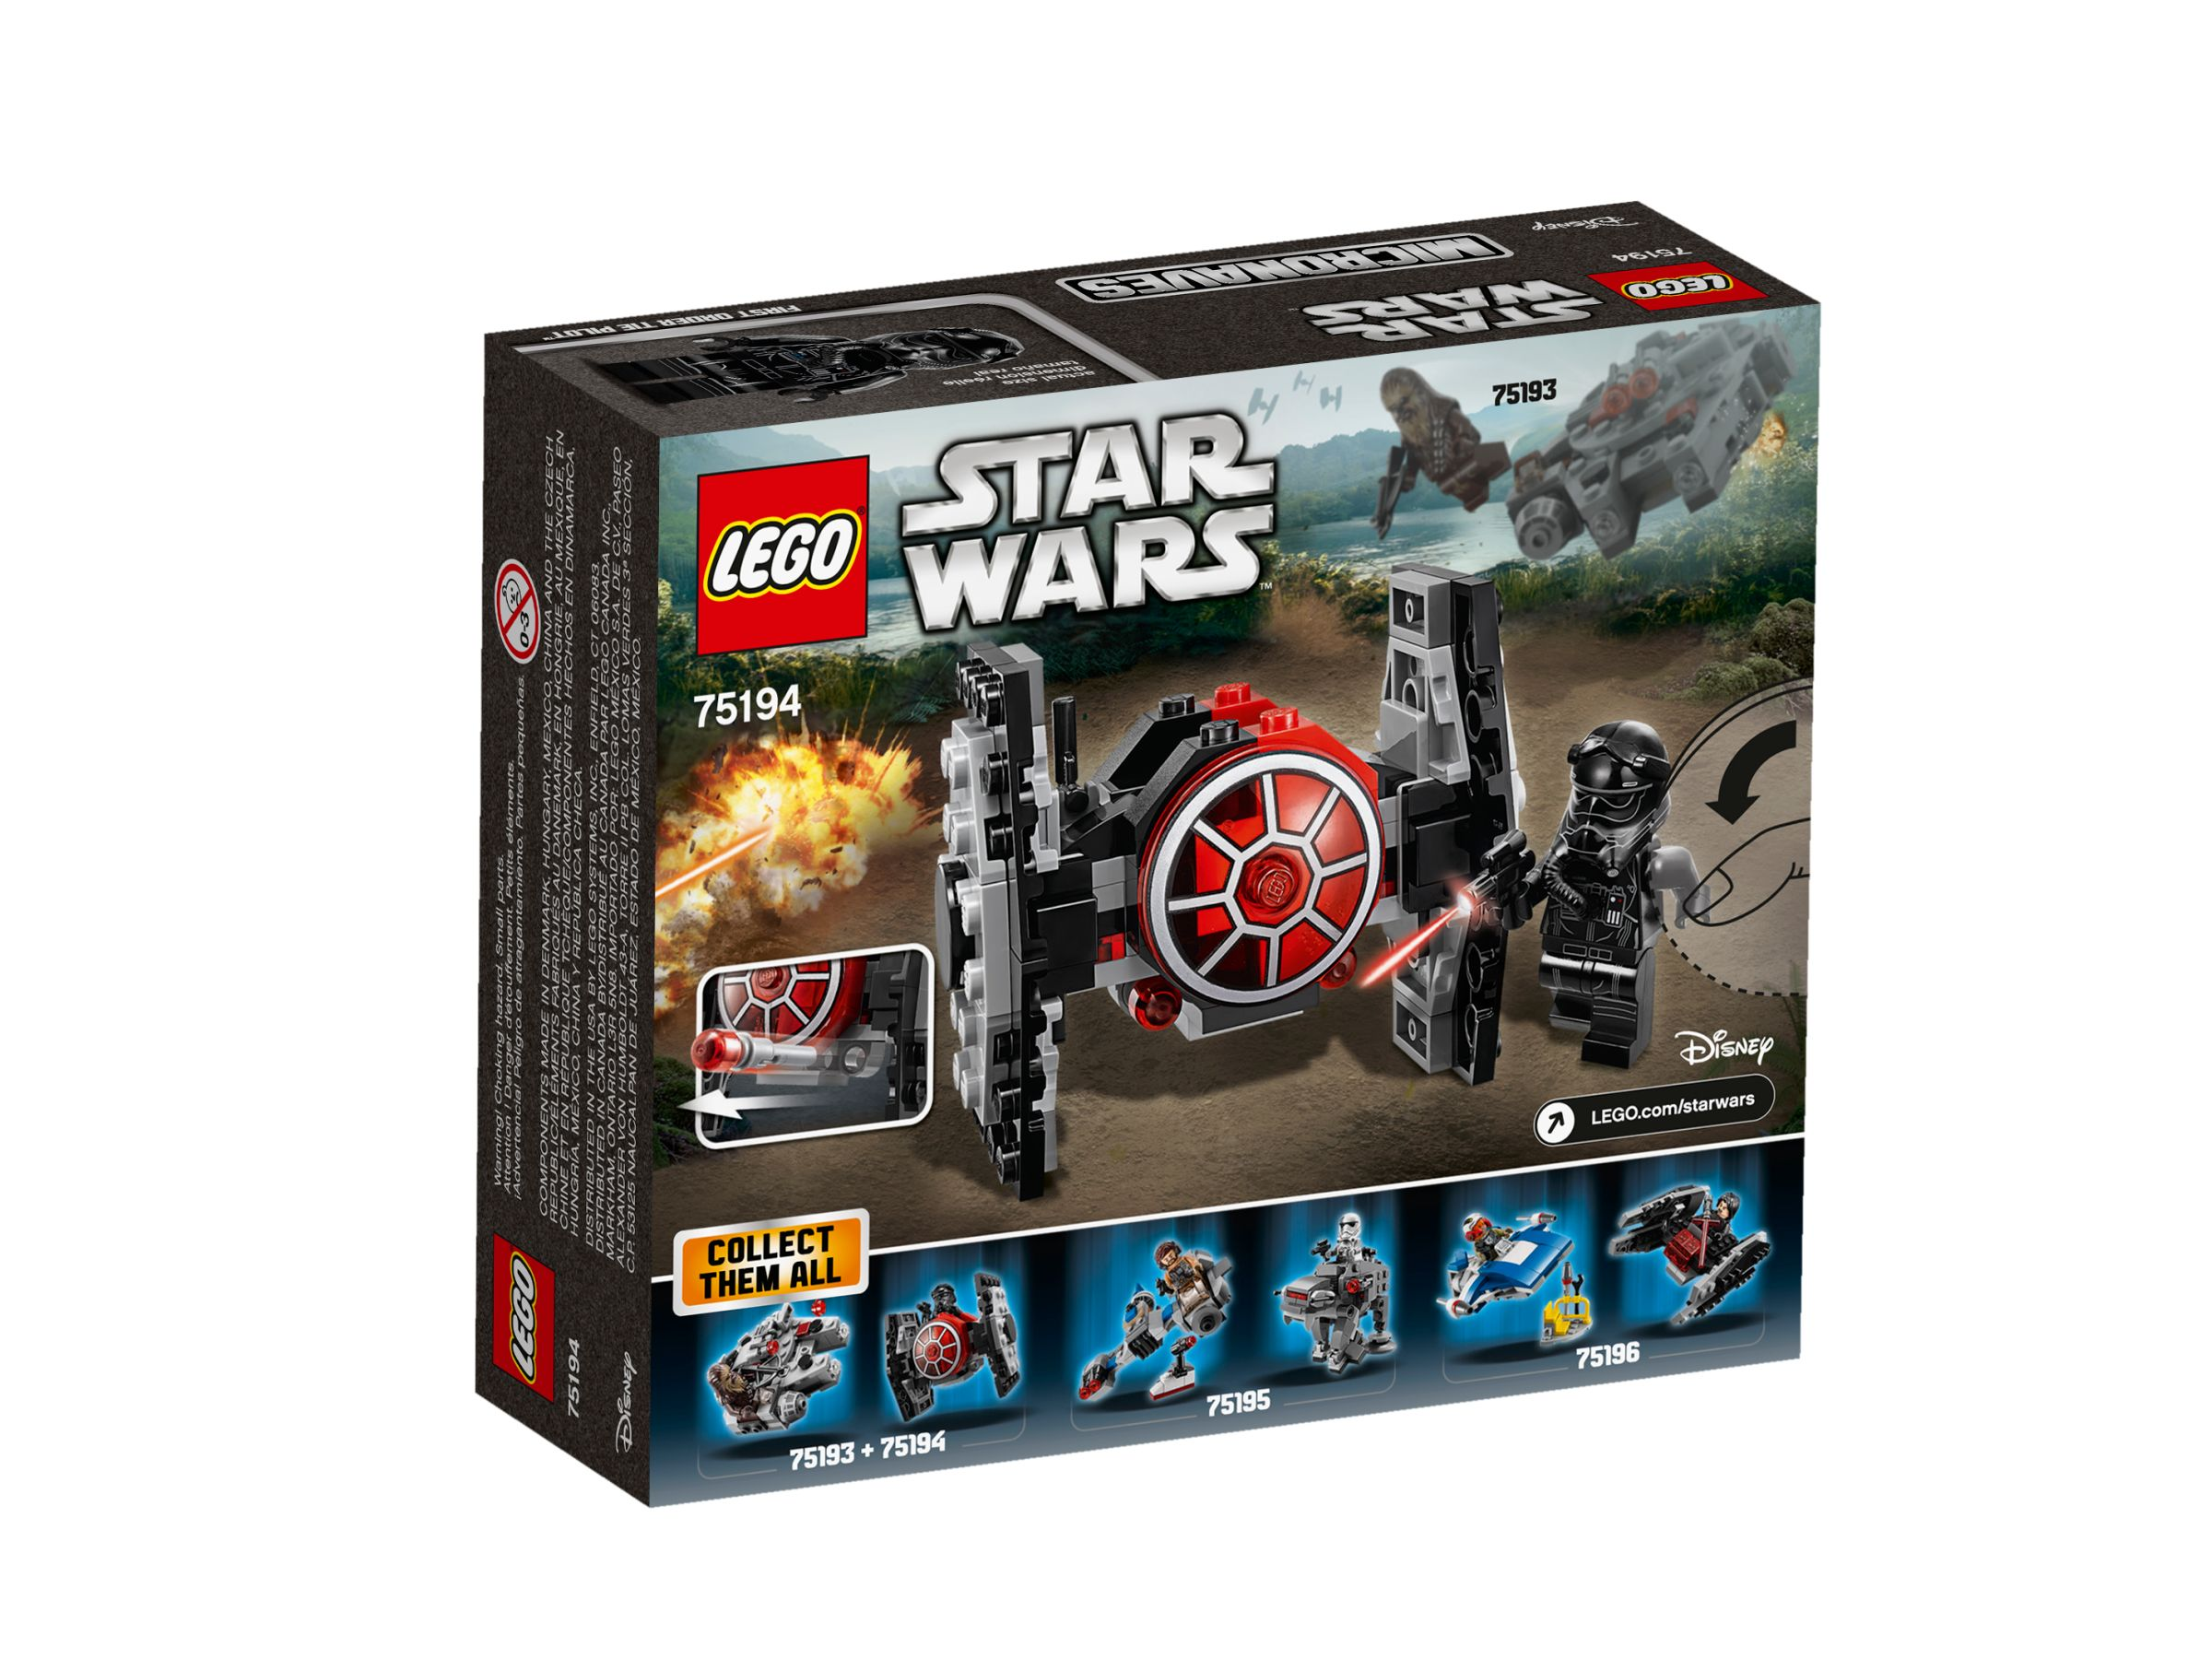 LEGO Star Wars 75194 First Order TIE Fighter Microfighter LEGO_75194_alt2.jpg